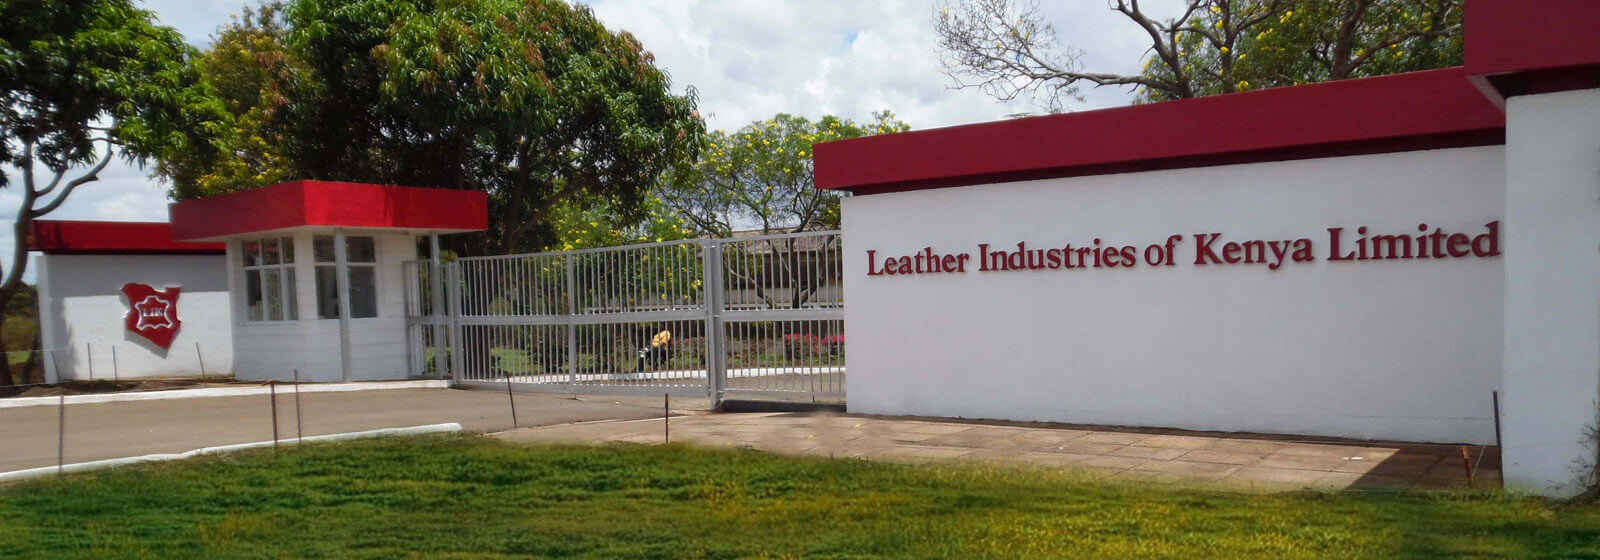 Leather Industries Kenya Banner 1